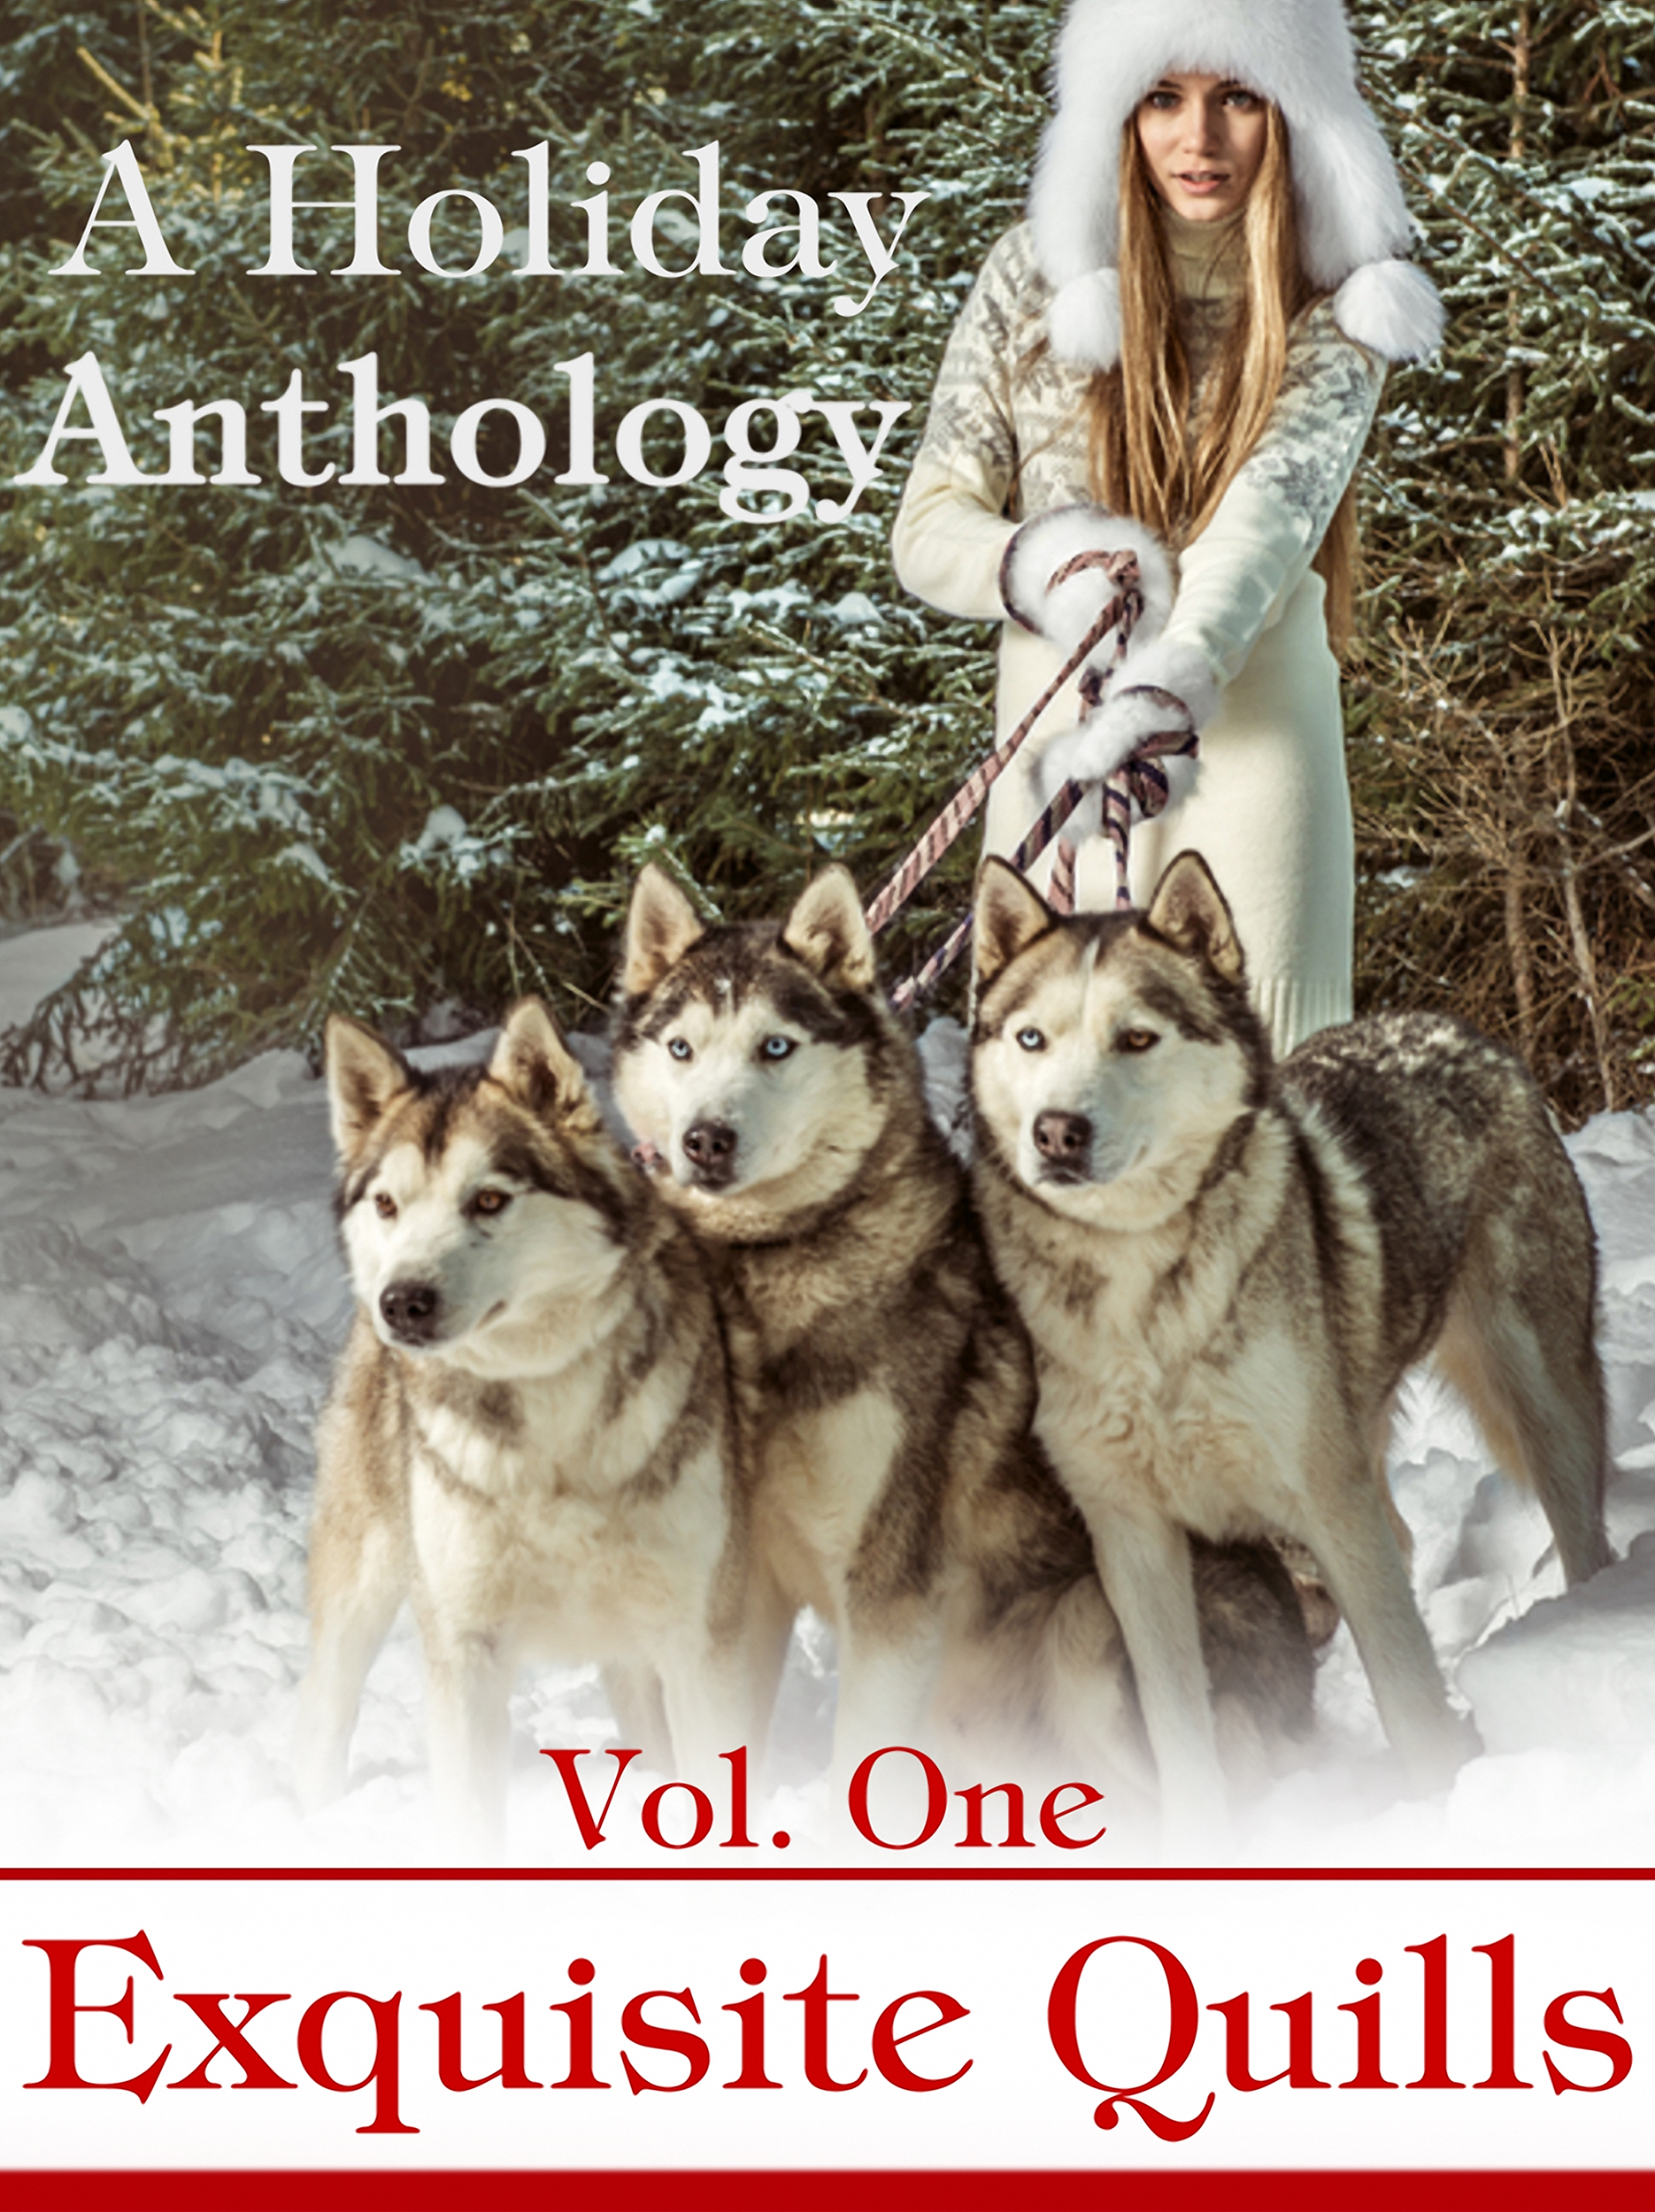 exquisite quills, helena fairfax, holiday anthology